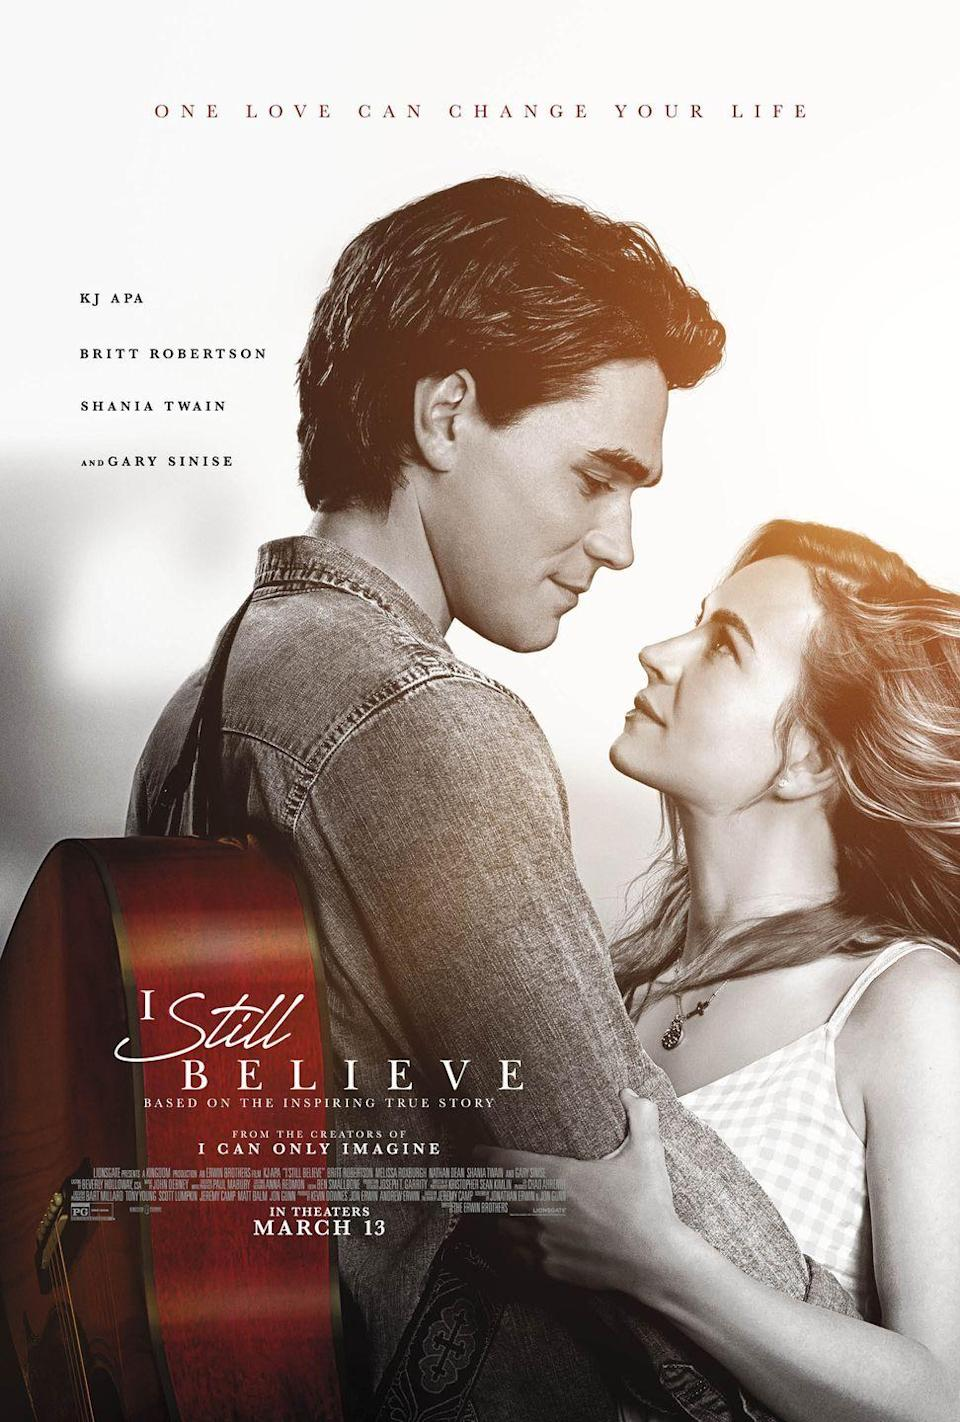 """<p>The only thing more tear-jerking than the plot of this movie is that it's based on a true love story. A Christian singer-songwriter is forced to accept the cruel reality that his wife is dying from cancer, causing him to question his faith and accept a new reality without the love of his life.</p><p><a class=""""link rapid-noclick-resp"""" href=""""https://go.redirectingat.com?id=74968X1596630&url=https%3A%2F%2Fwww.vudu.com%2Fcontent%2Fmovies%2Fdetails%2FI-Still-Believe%2F1361792&sref=https%3A%2F%2Fwww.womenshealthmag.com%2Flife%2Fg27486022%2Fbest-movies-based-on-true-stories%2F"""" rel=""""nofollow noopener"""" target=""""_blank"""" data-ylk=""""slk:Watch Here"""">Watch Here</a></p>"""